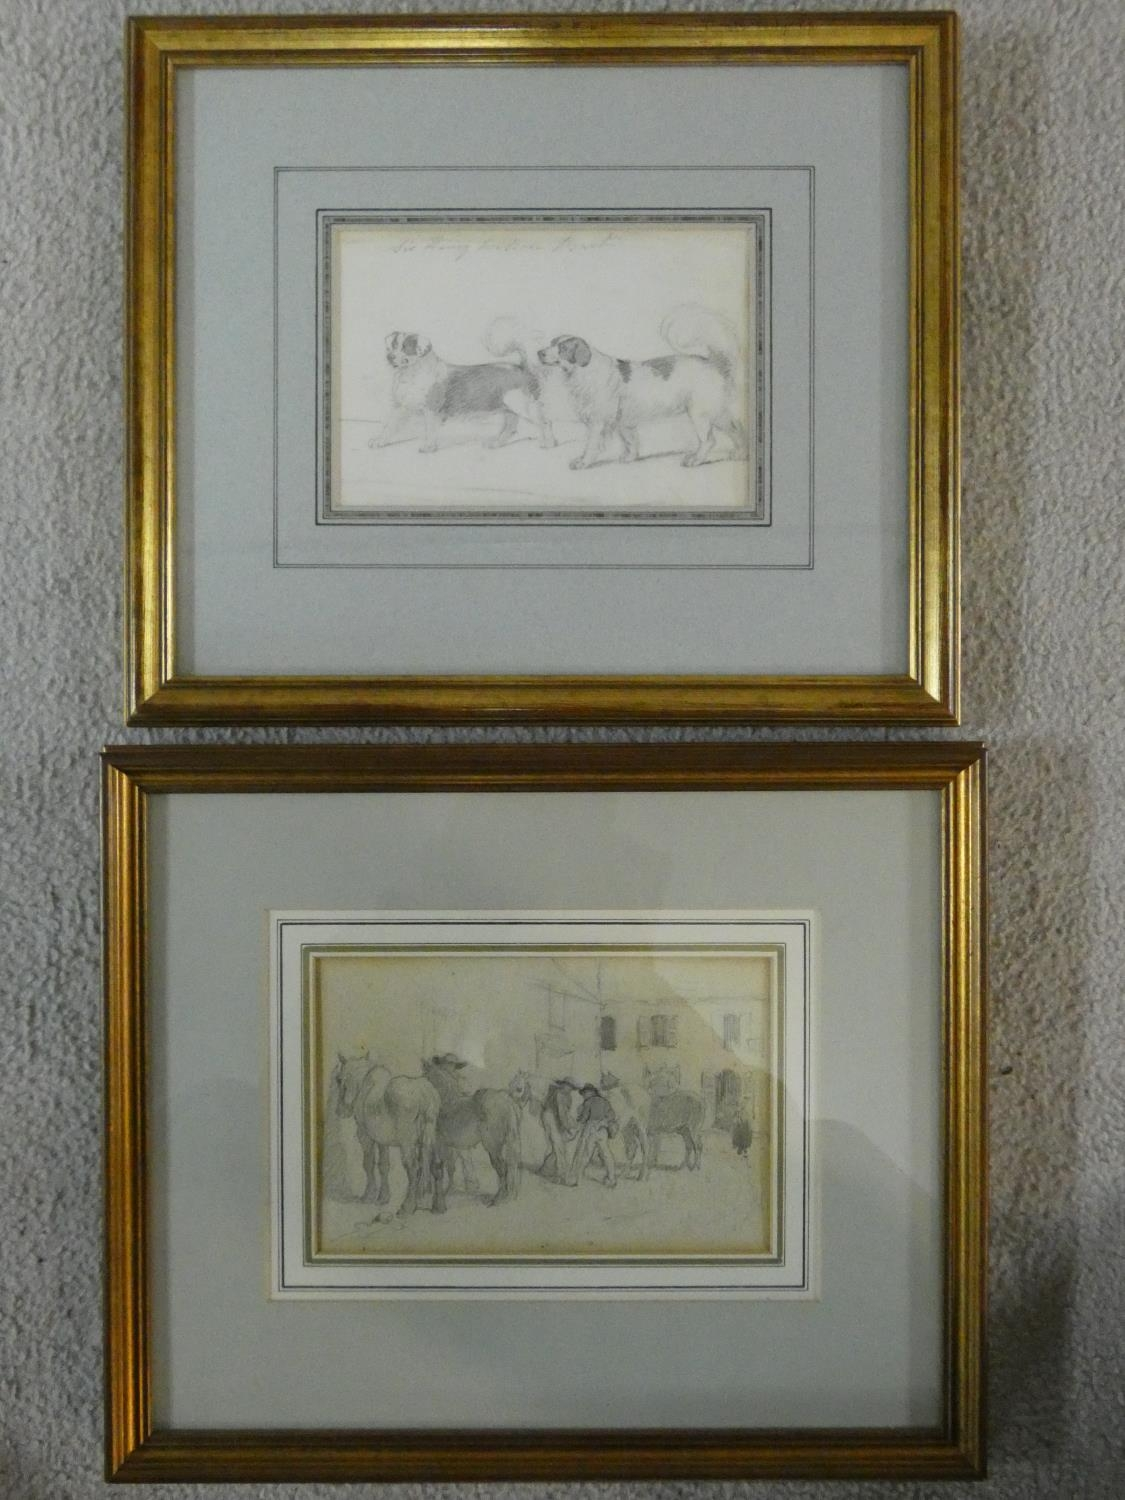 Two 19th century framed and glazed pencil studies, figures in a stable yard and Sir Henry Wilson's